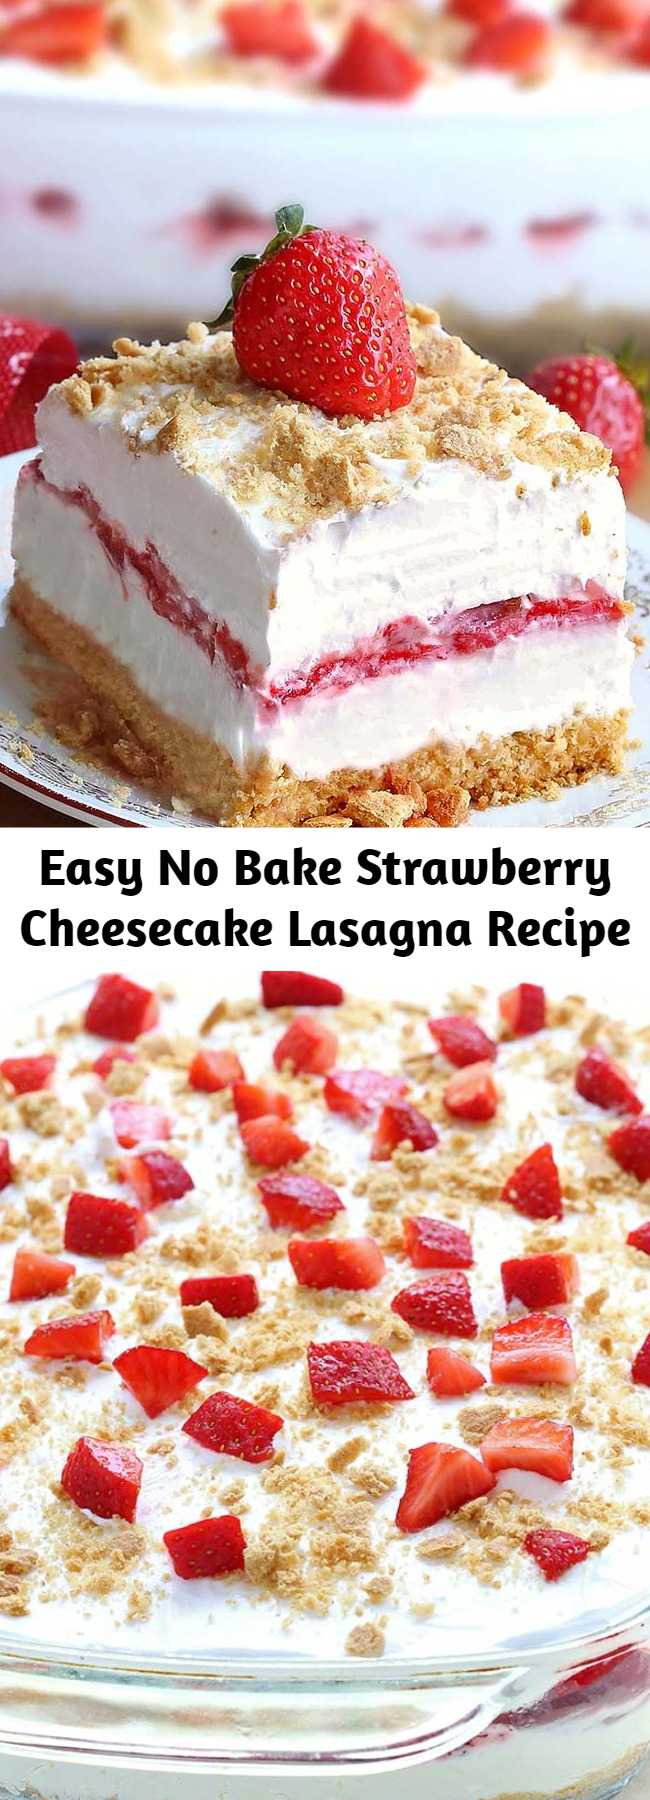 Easy No Bake Strawberry Cheesecake Lasagna Recipe - This No Bake Strawberry Cheesecake Lasagna will make all Your Strawberries and Cream dreams come true. A dessert lasagna with graham cracker crust, cream cheese filling, strawberries and cream topping.